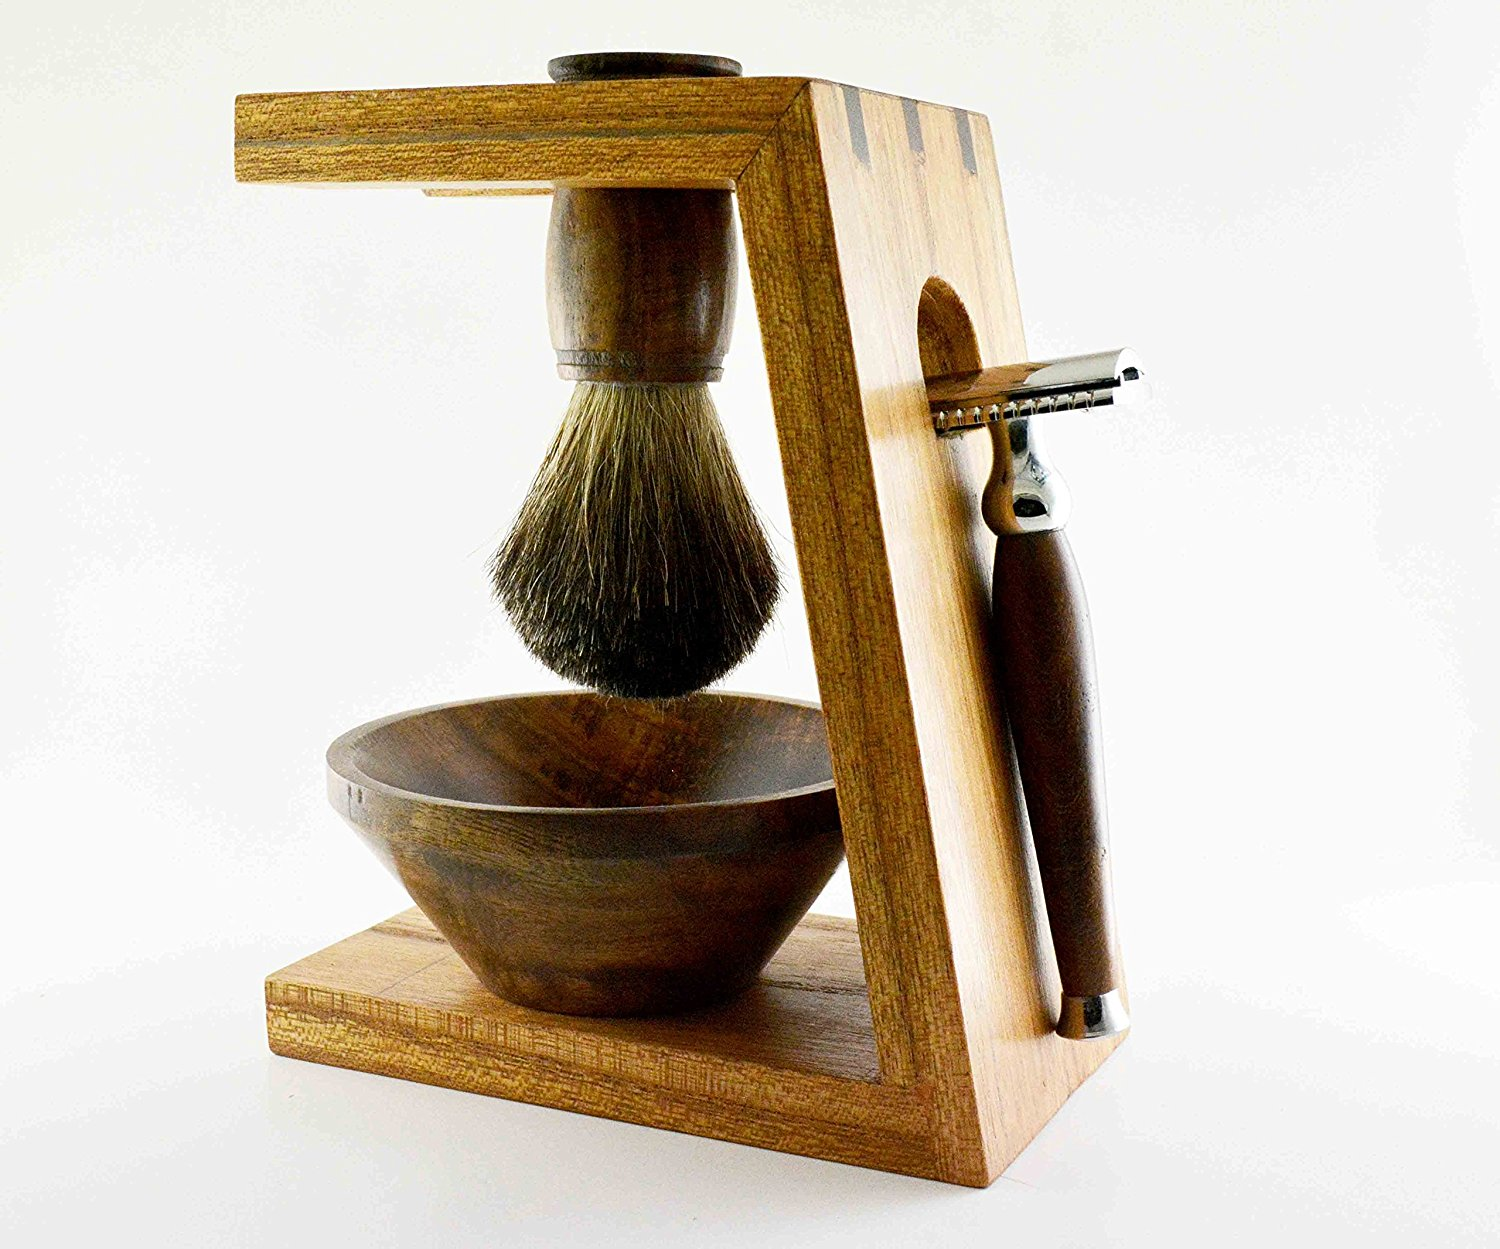 Safety Razor Shaving Kit By Cutlass | Safety Razor | Shaving Brush | Shaving Stand | Shaving Bowl | 5 Shaving Blades | Stainless Steel | Rosewood | 100% Money Back Guarantee*